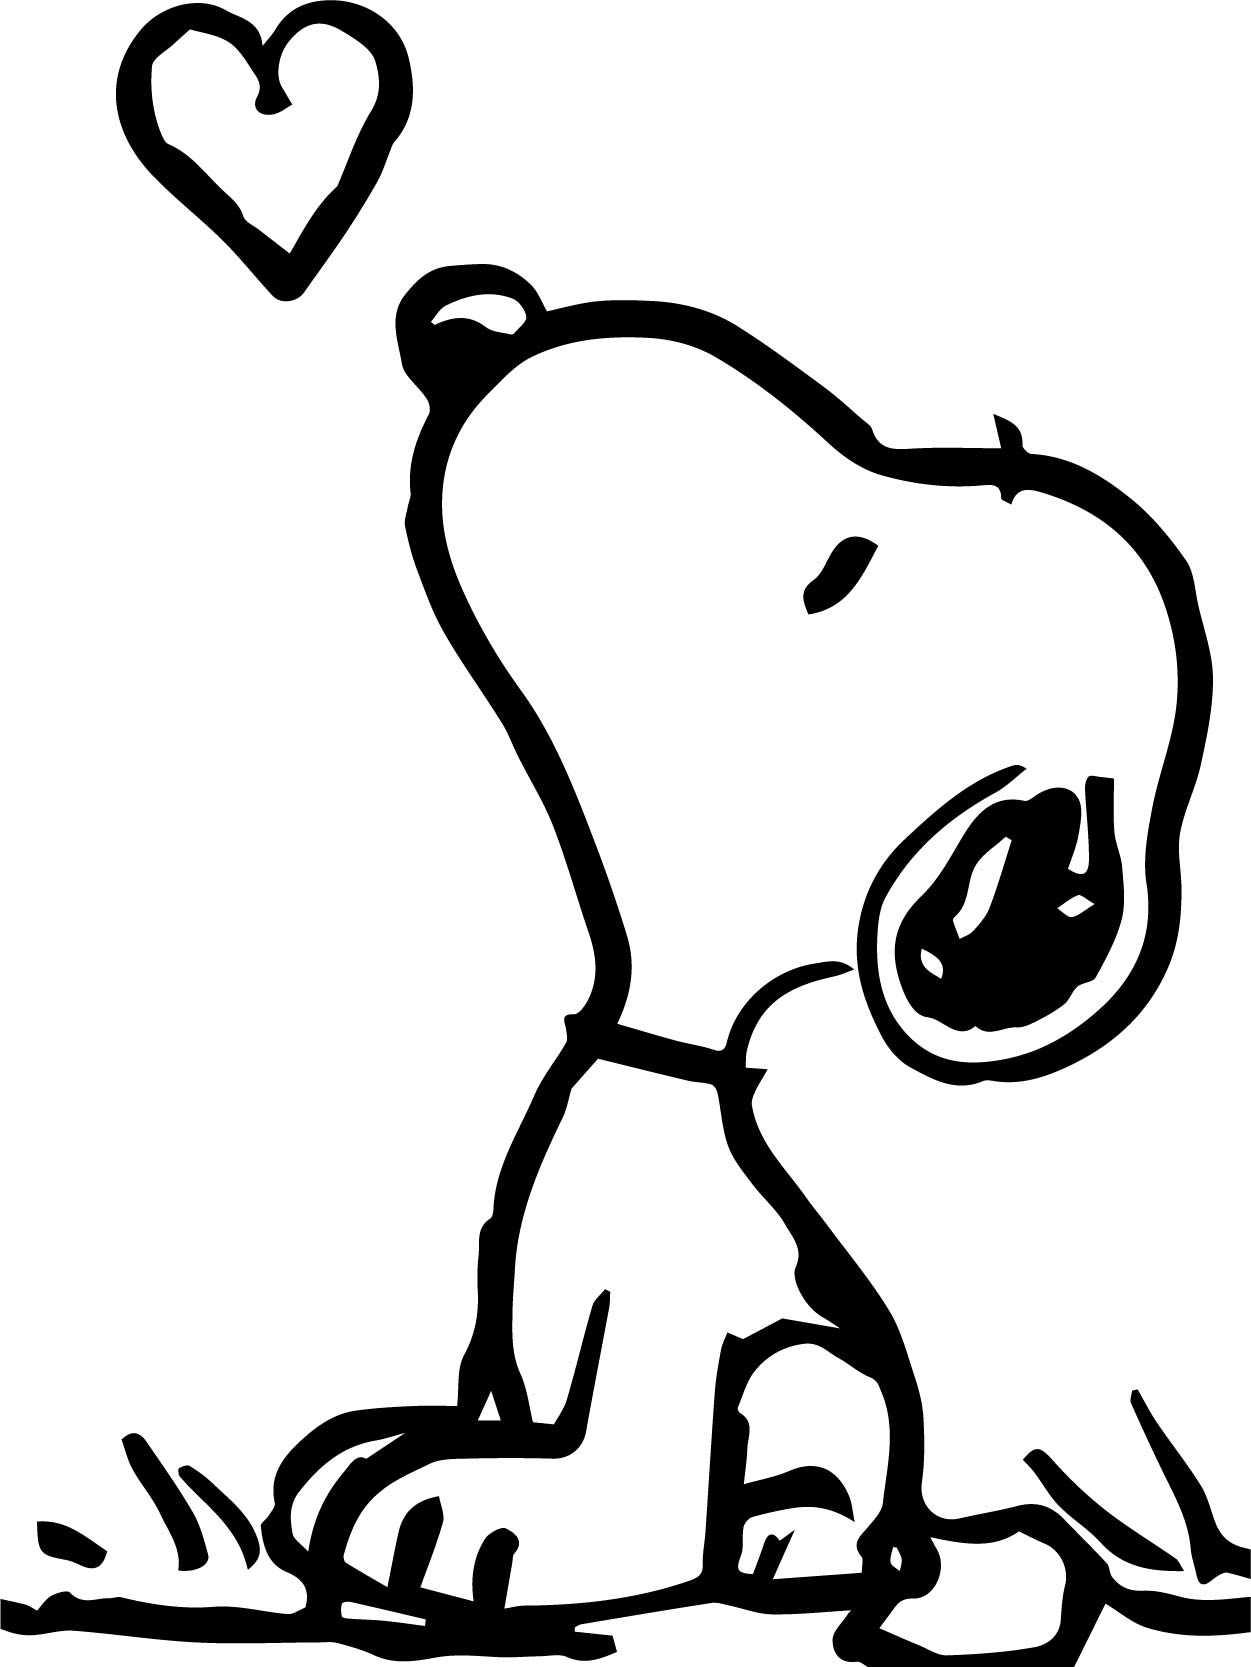 Snoopy Look Fly Heart Coloring Page